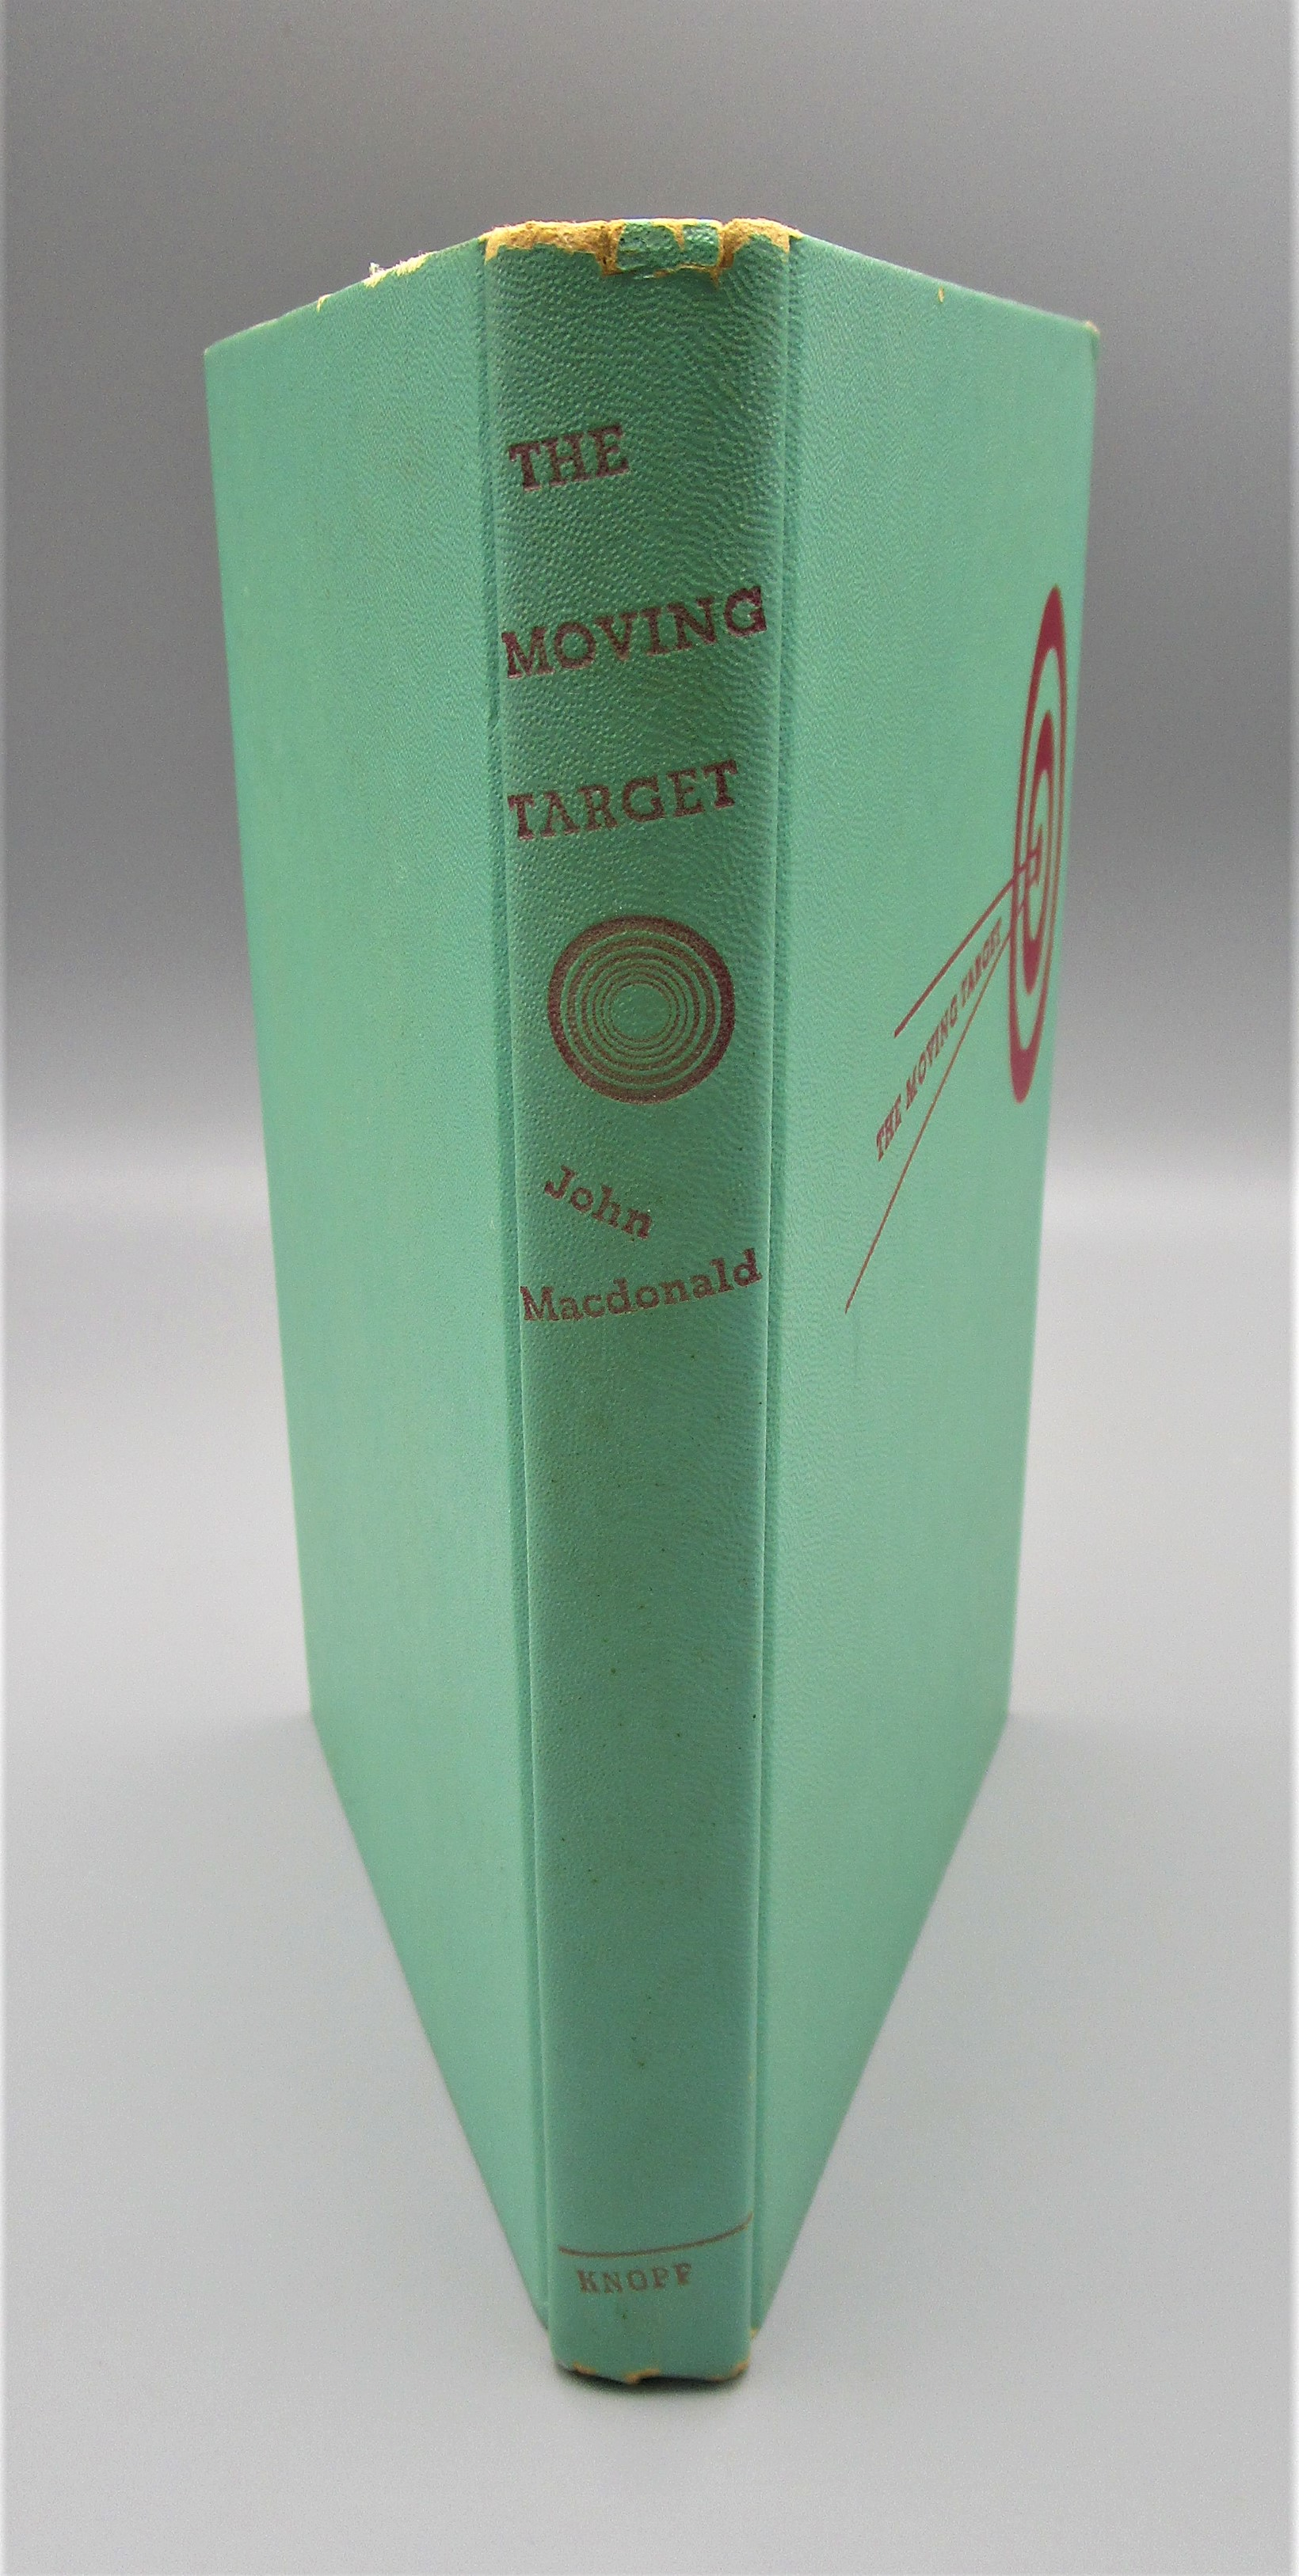 THE MOVING TARGET, by John Macdonald - 1949